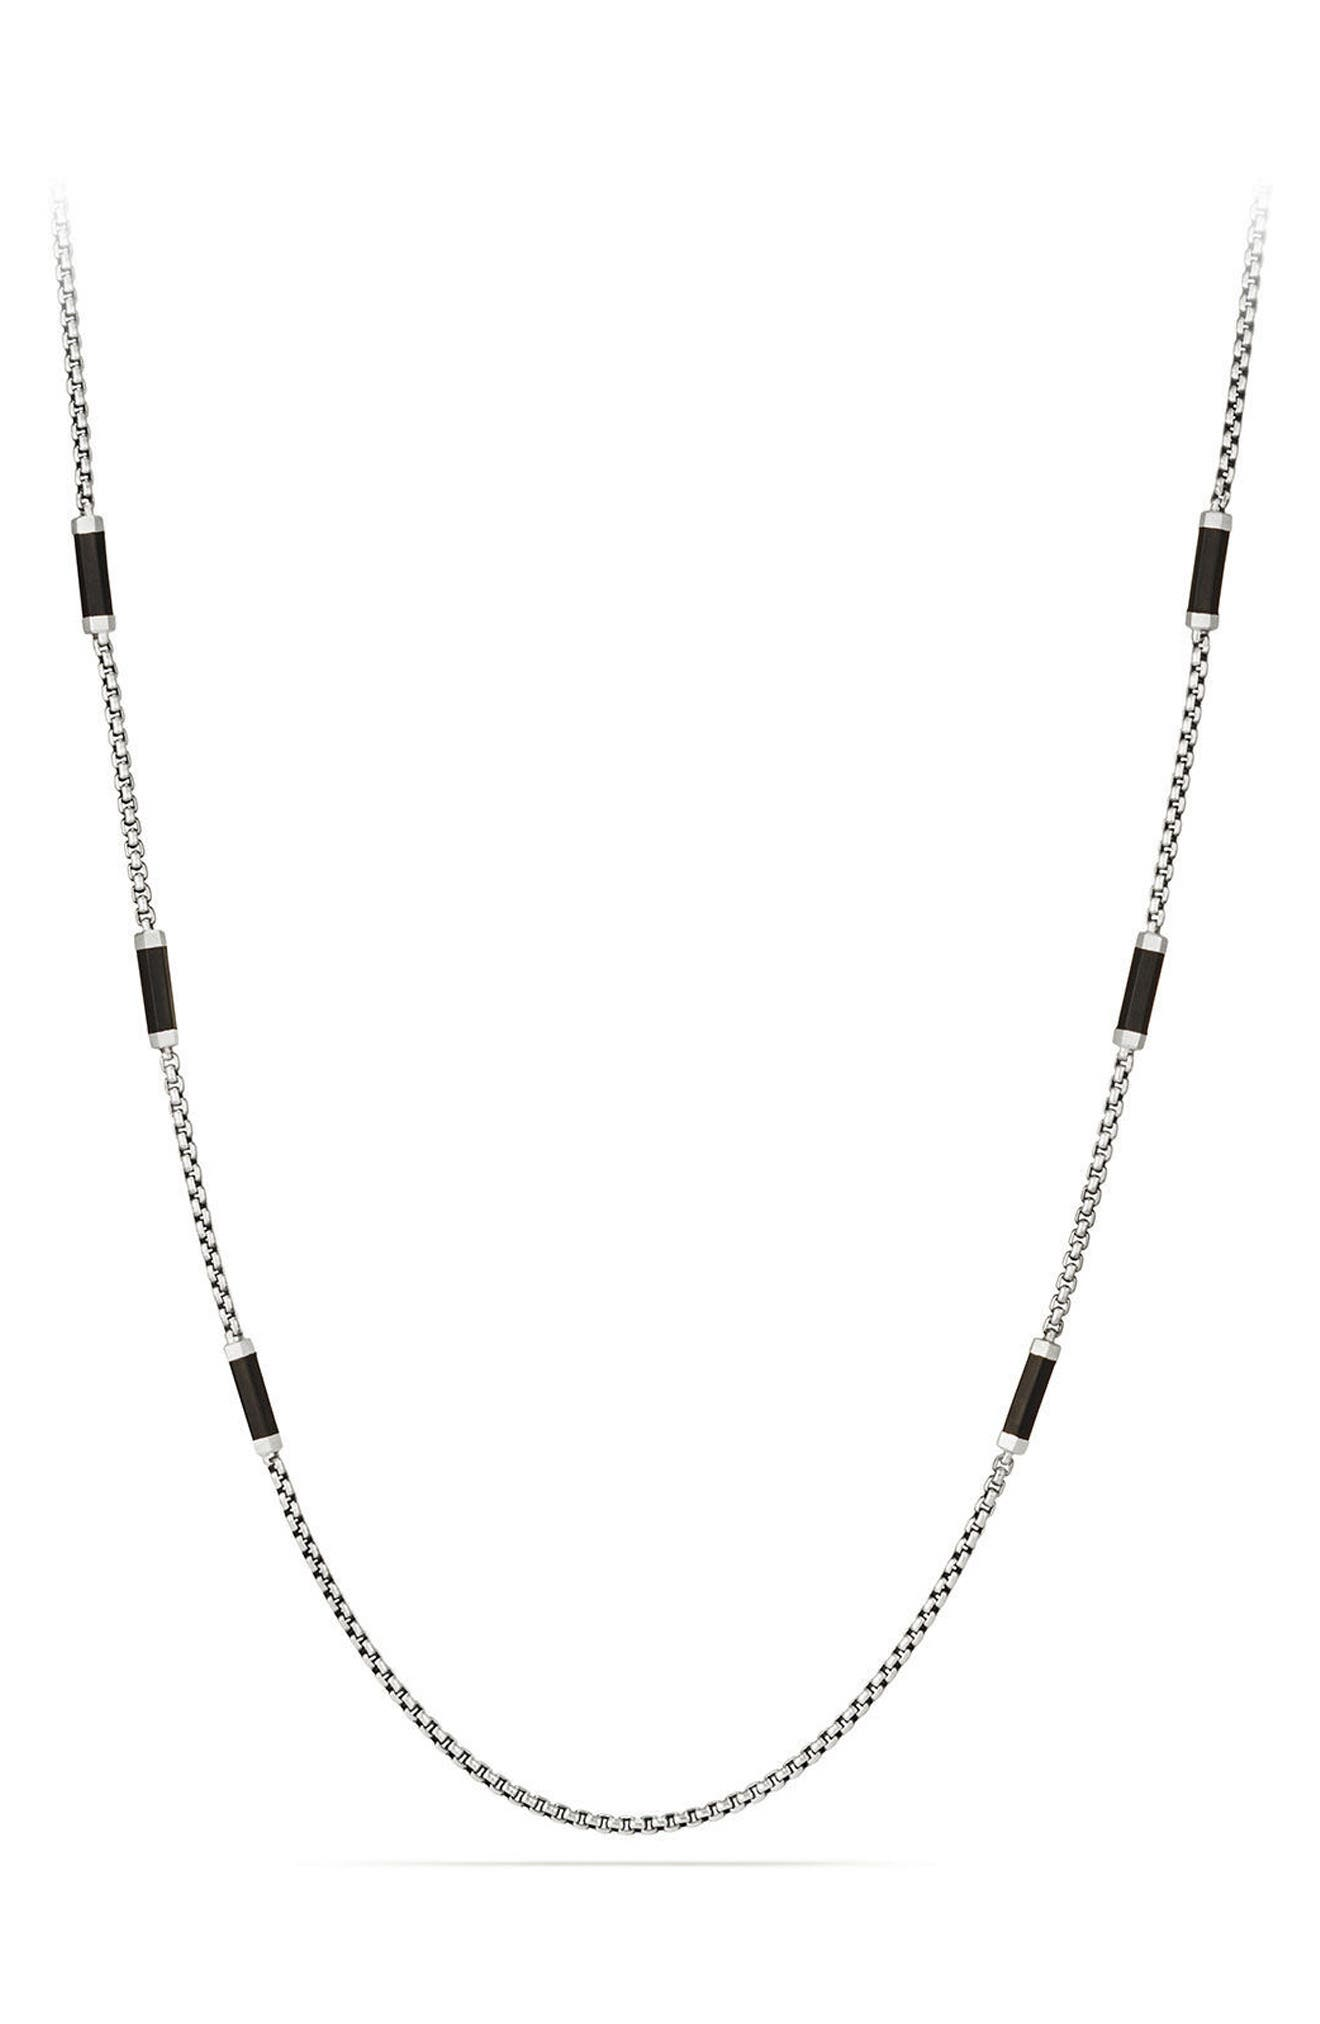 Alternate Image 1 Selected - David Yurman Hex Station Chain Necklace with Rubber